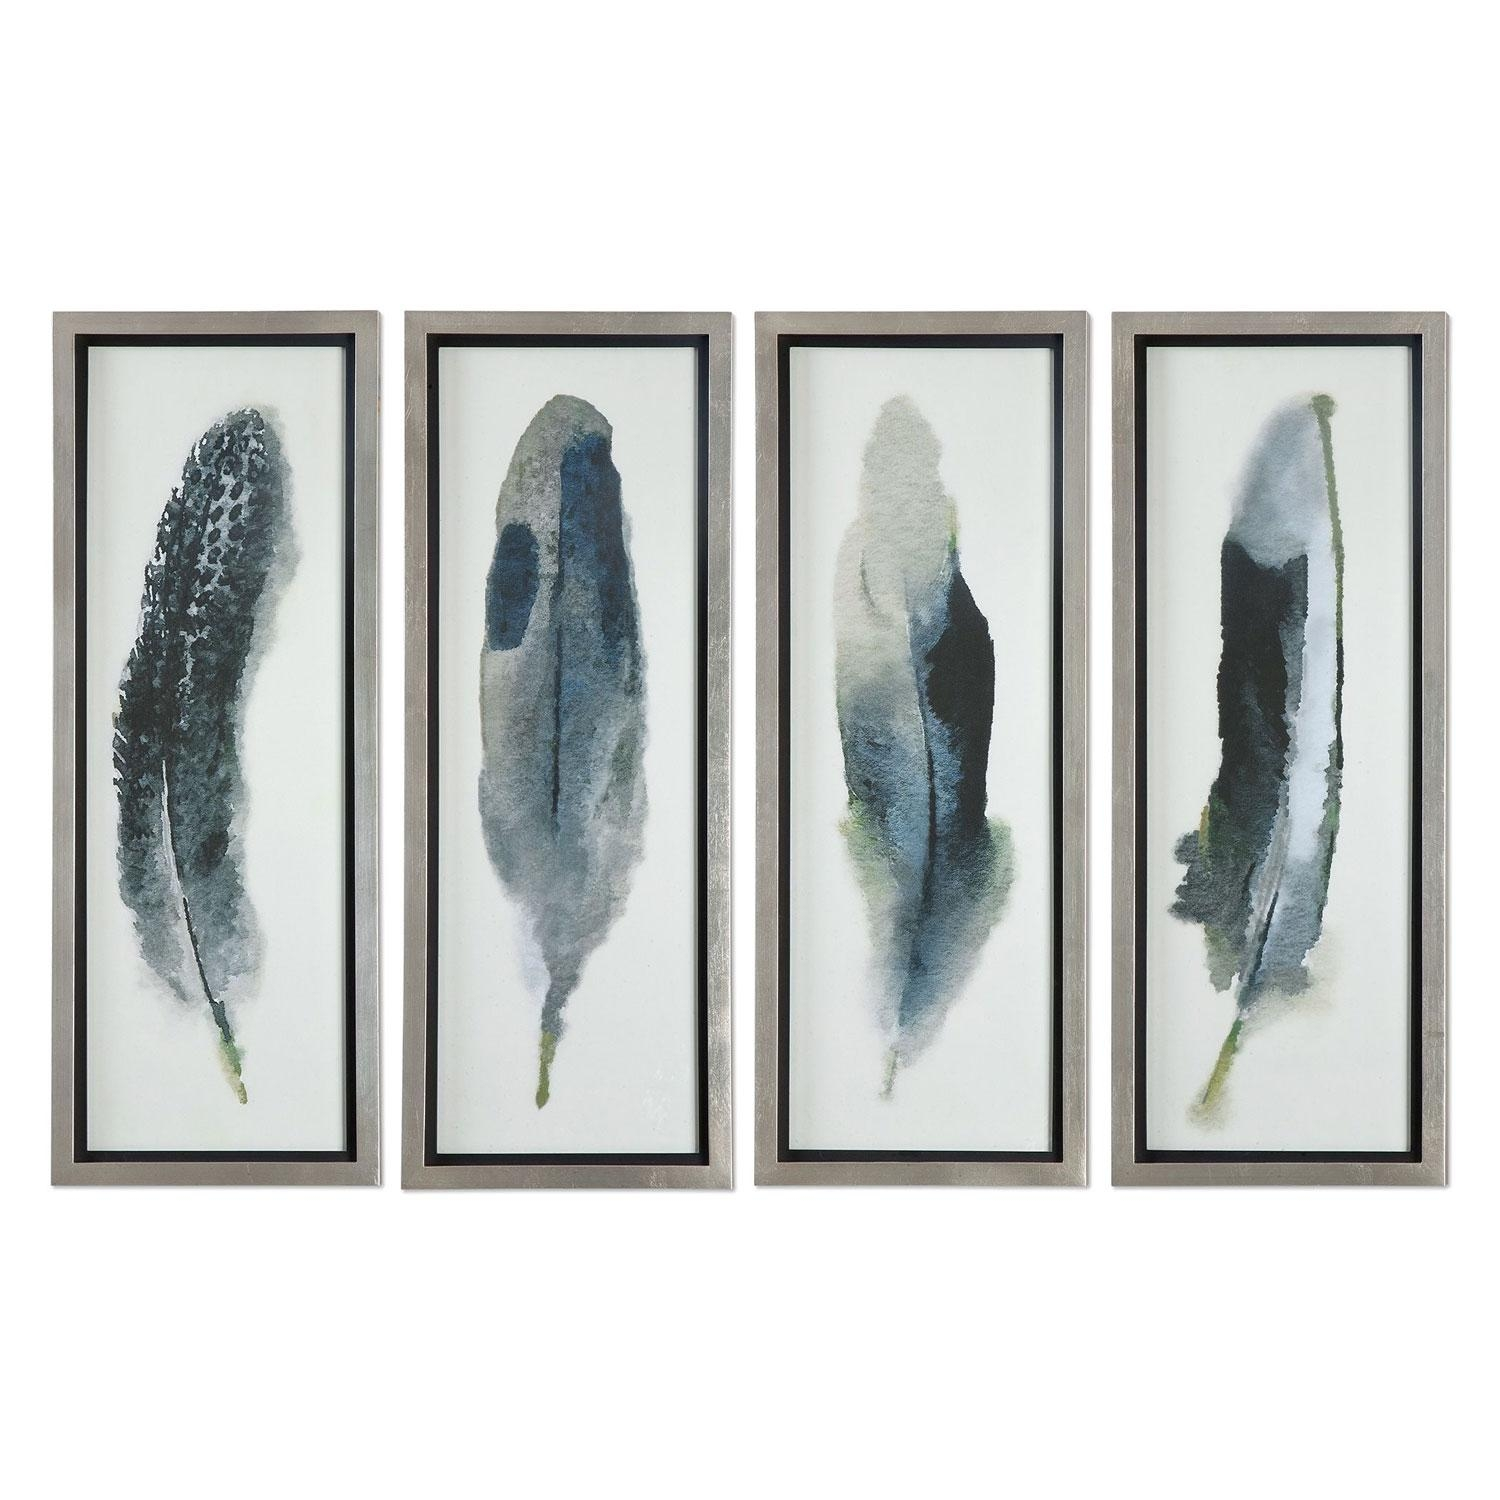 Feathered Beautygrace Feyock: 14 X 38 Inch Wall Art, Set Of With Regard To Wall Art Sets Of  (Image 6 of 20)